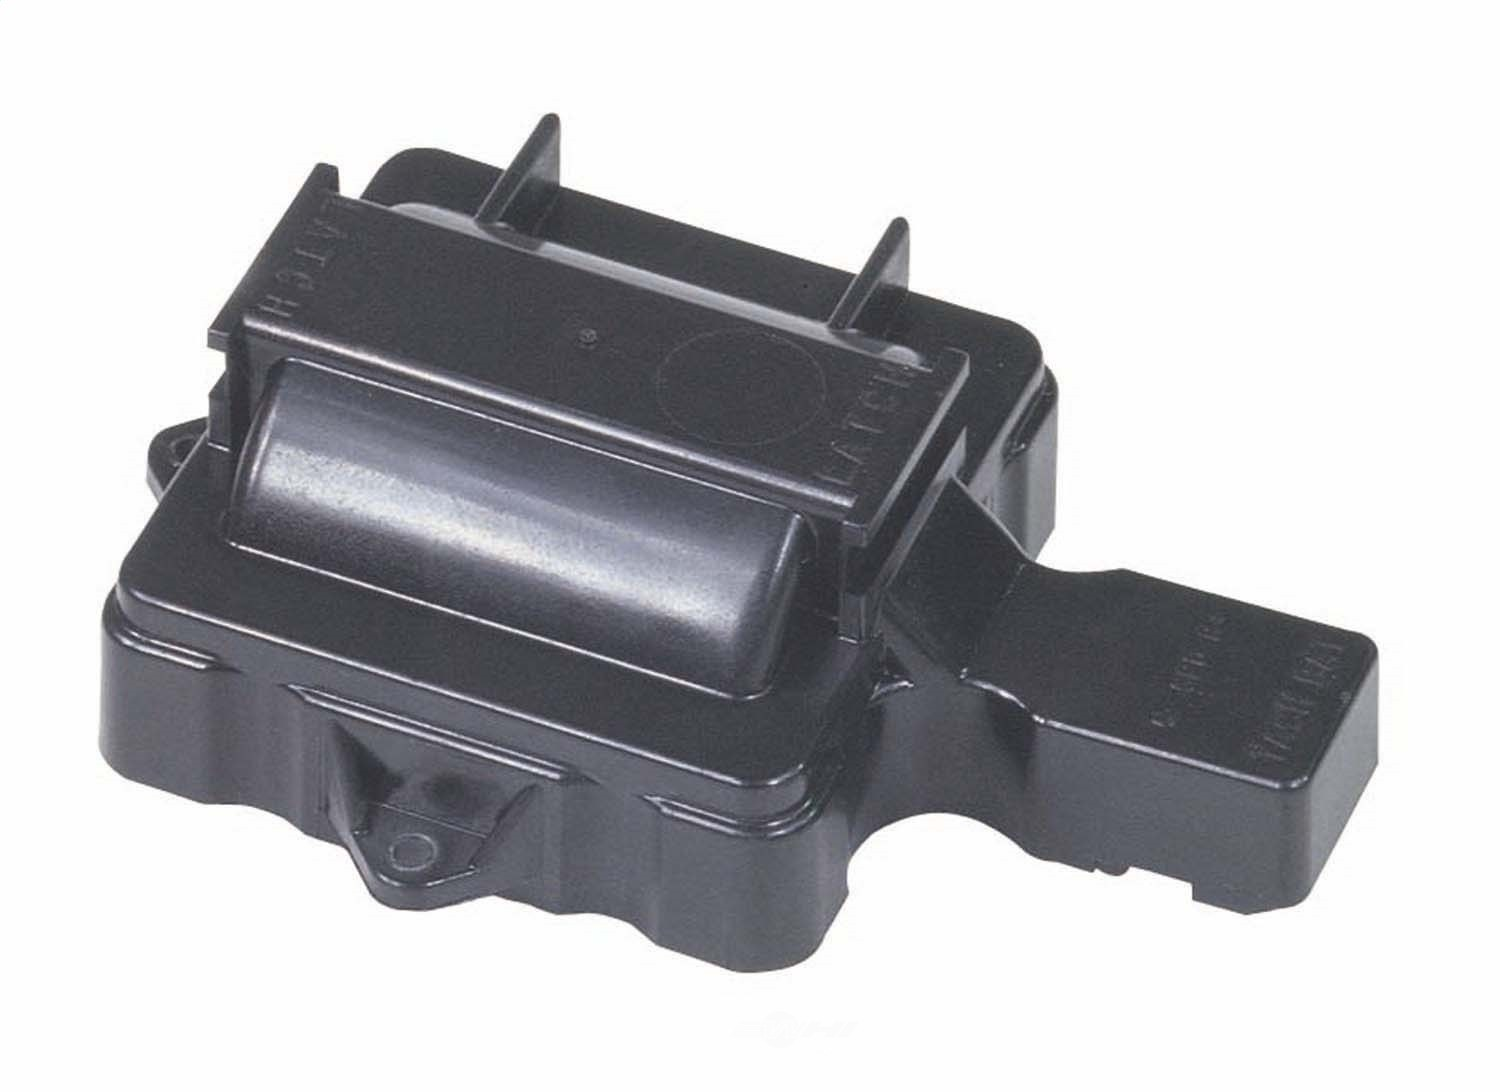 MSD IGNIT. - Ignition Coil Cover - MSD 8402